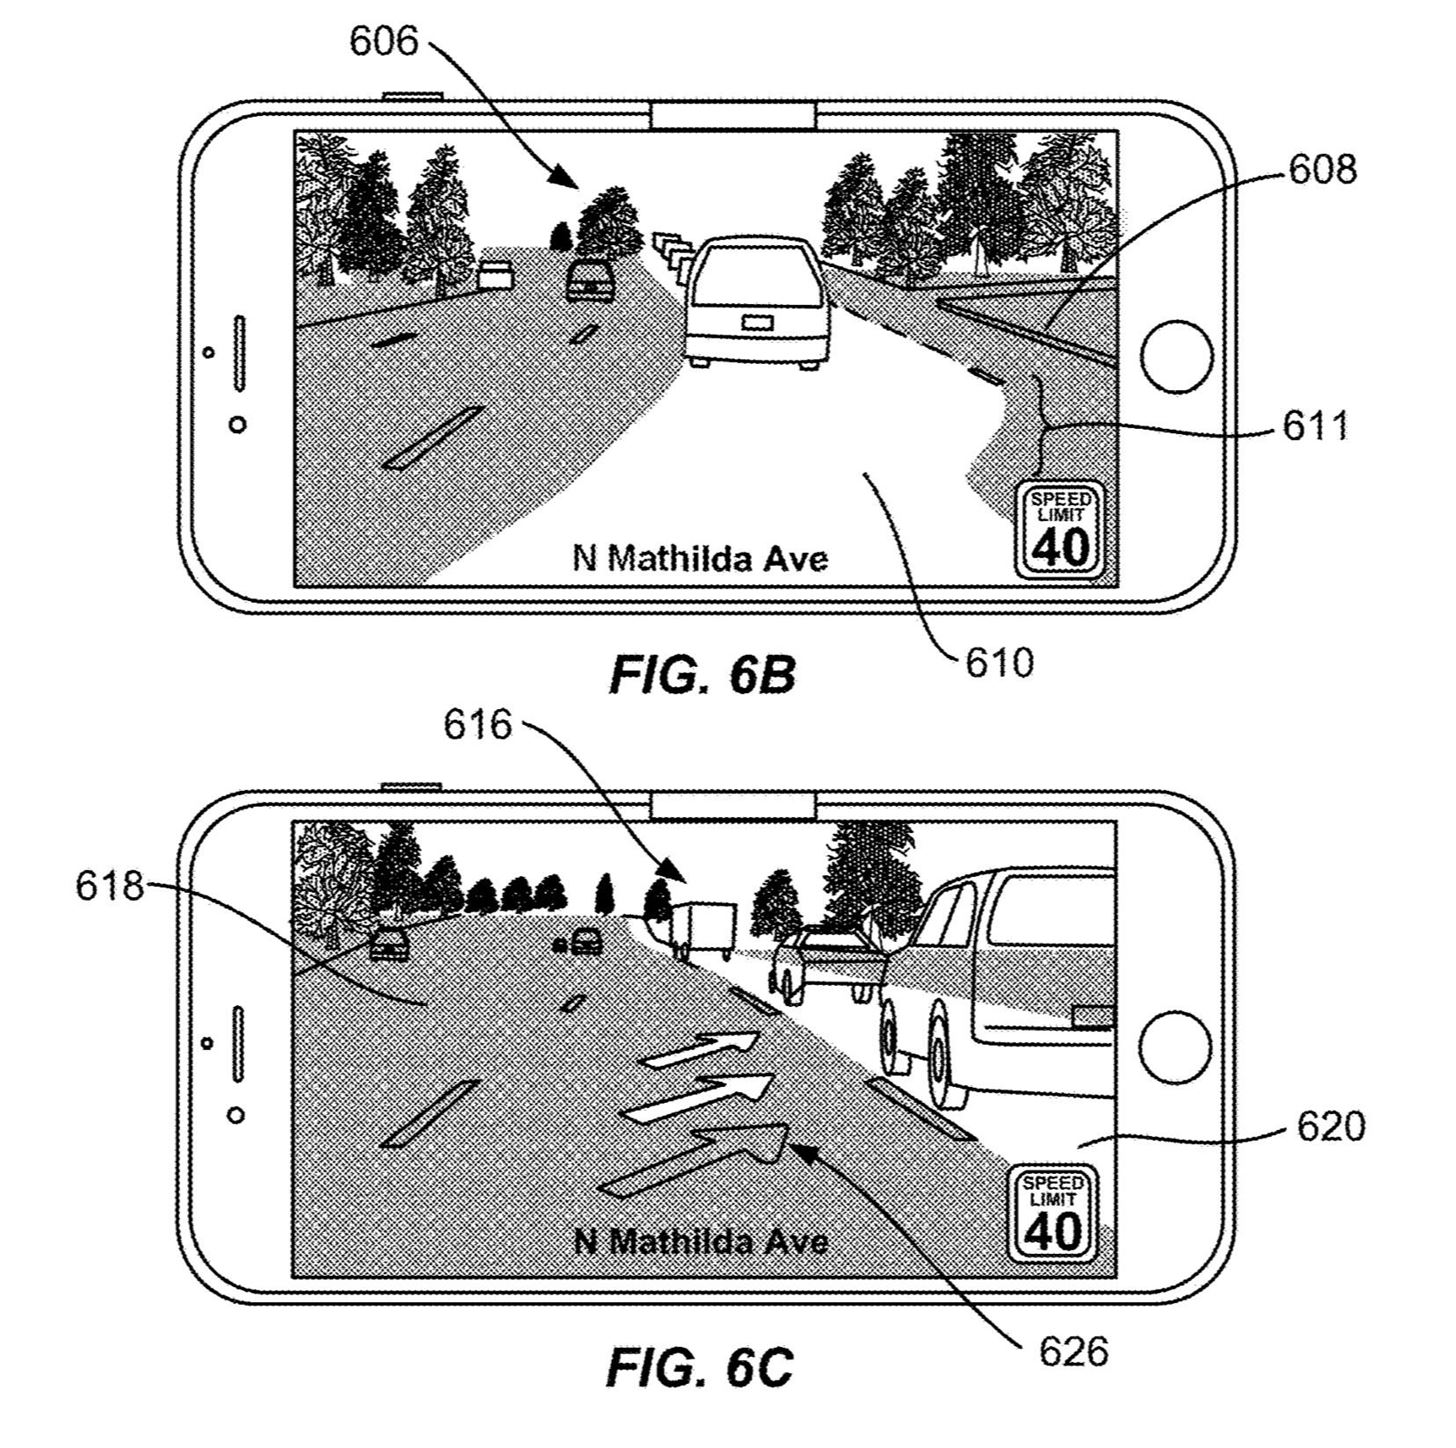 by Apple Latest Patent Proposes Augmented-Reality Navigation for Cars on Mobile Devices